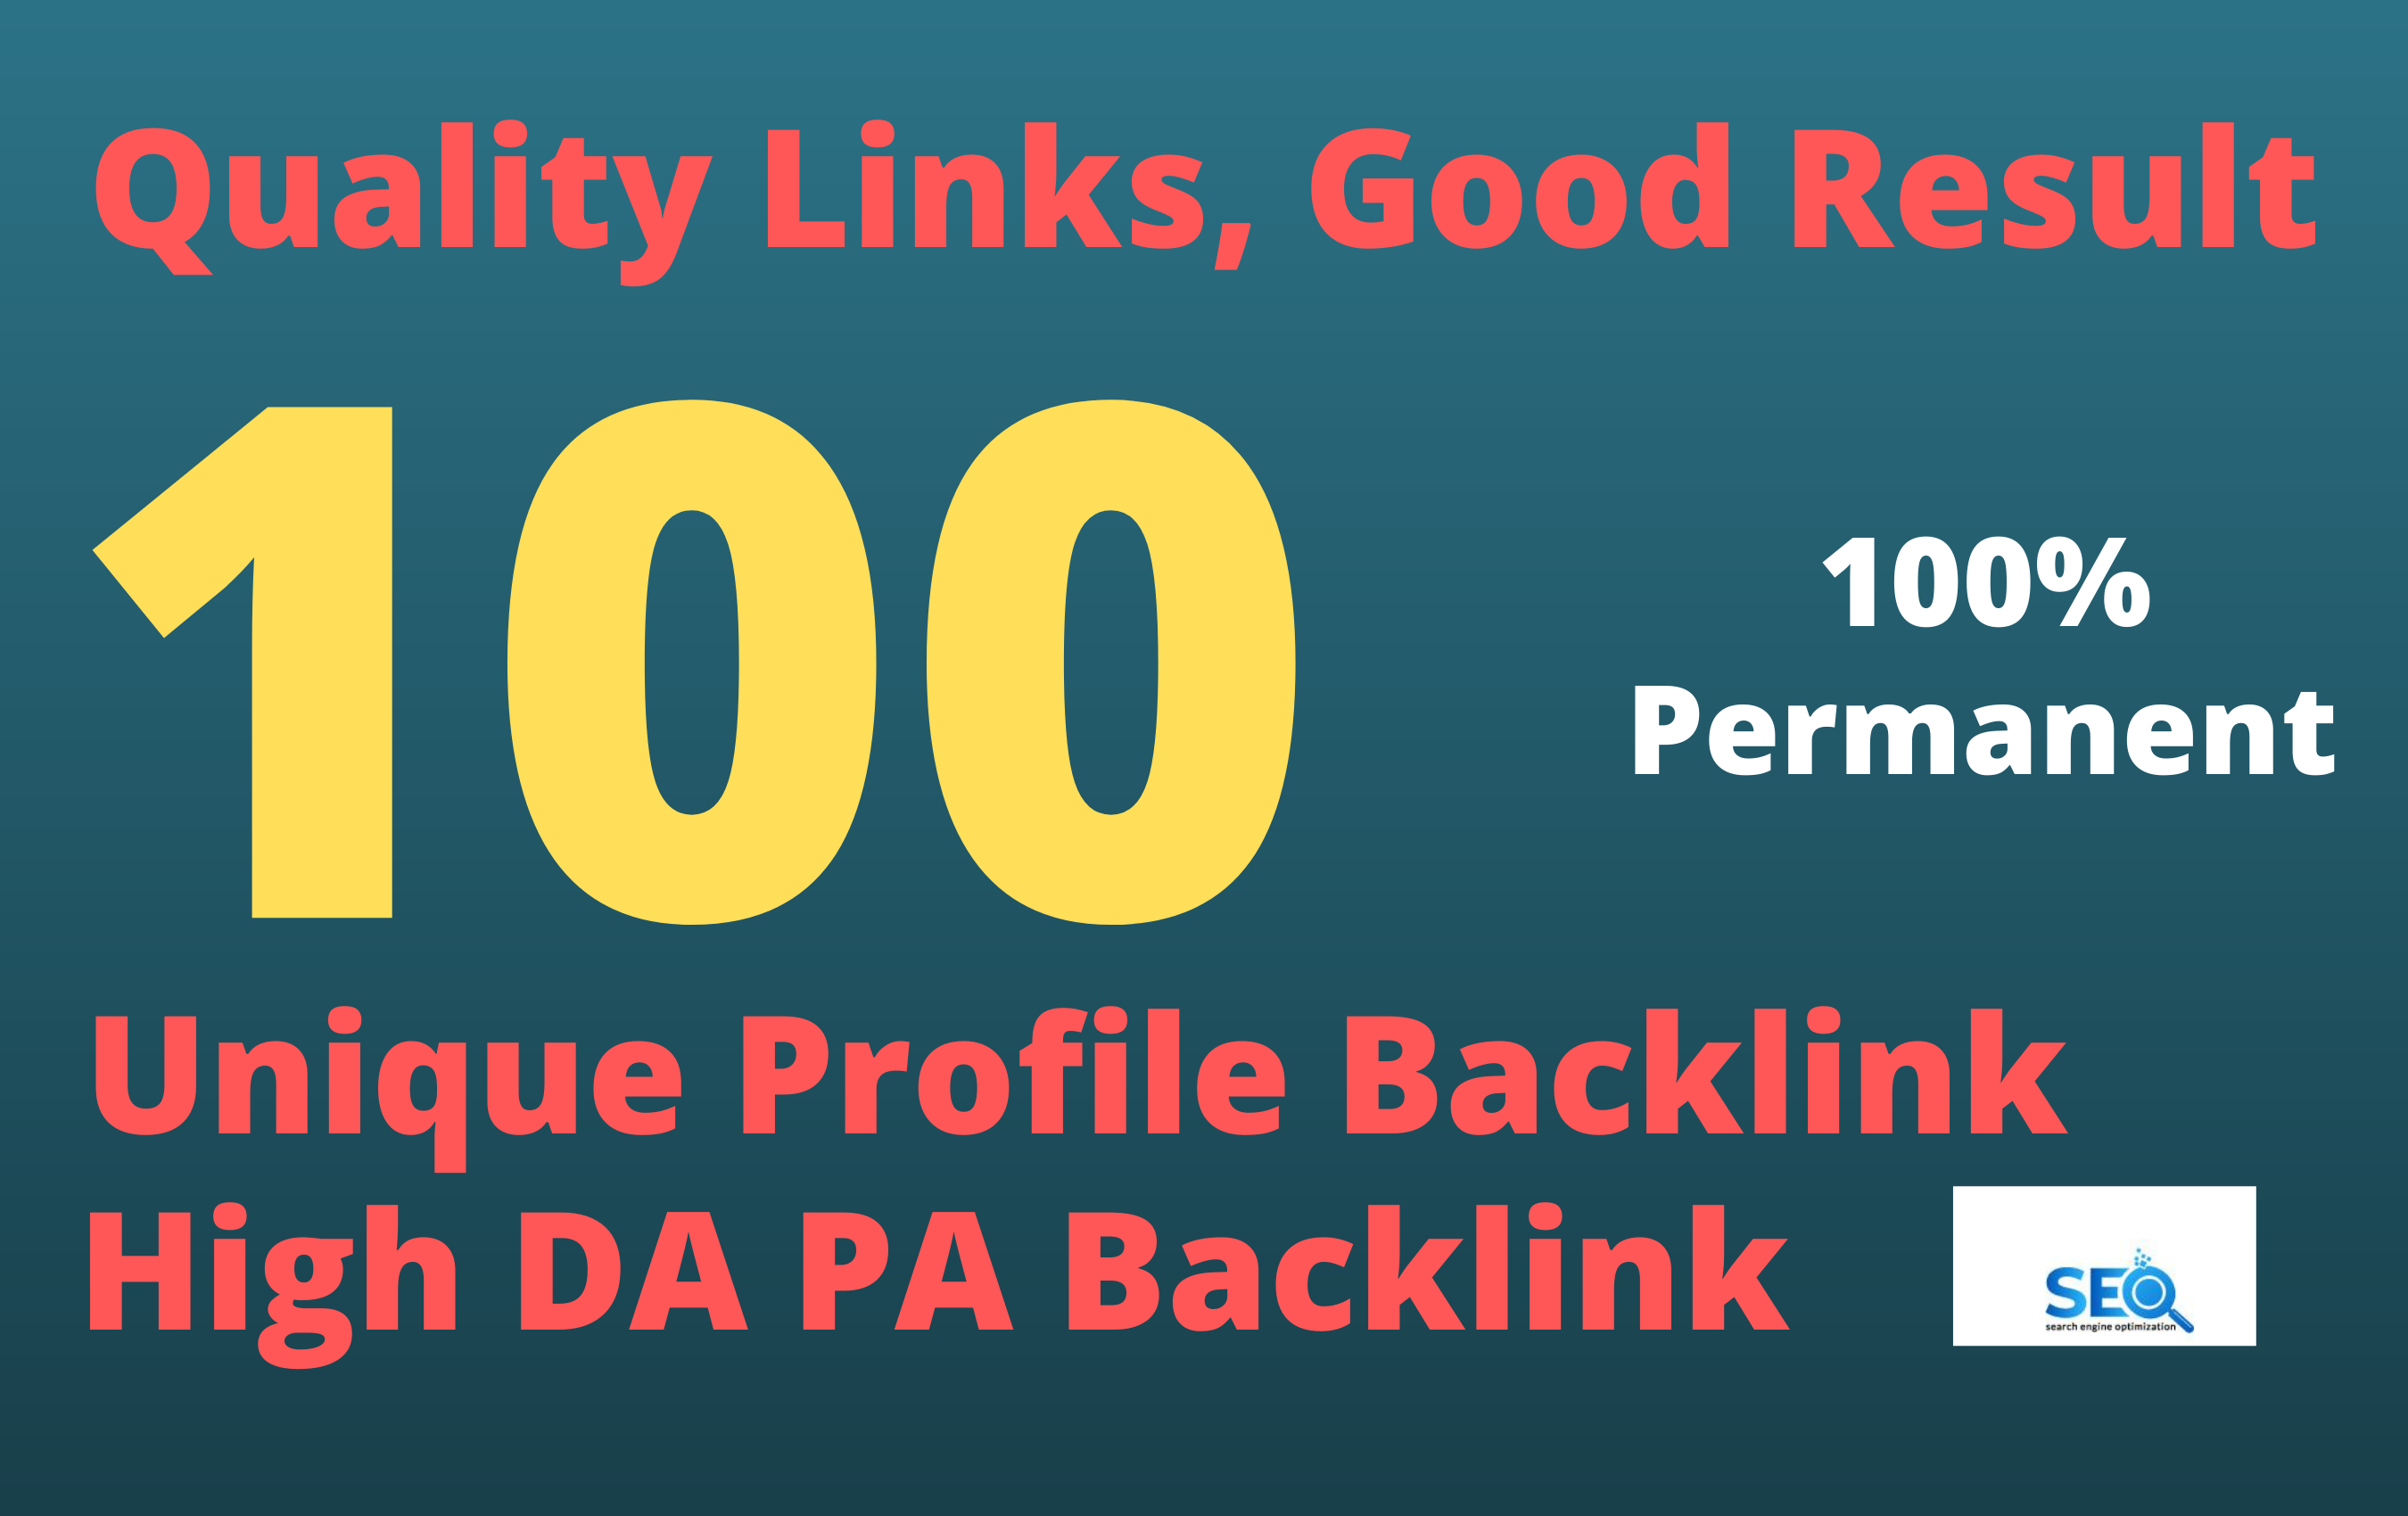 Manually create 100 Profile backlinks from high authority websites